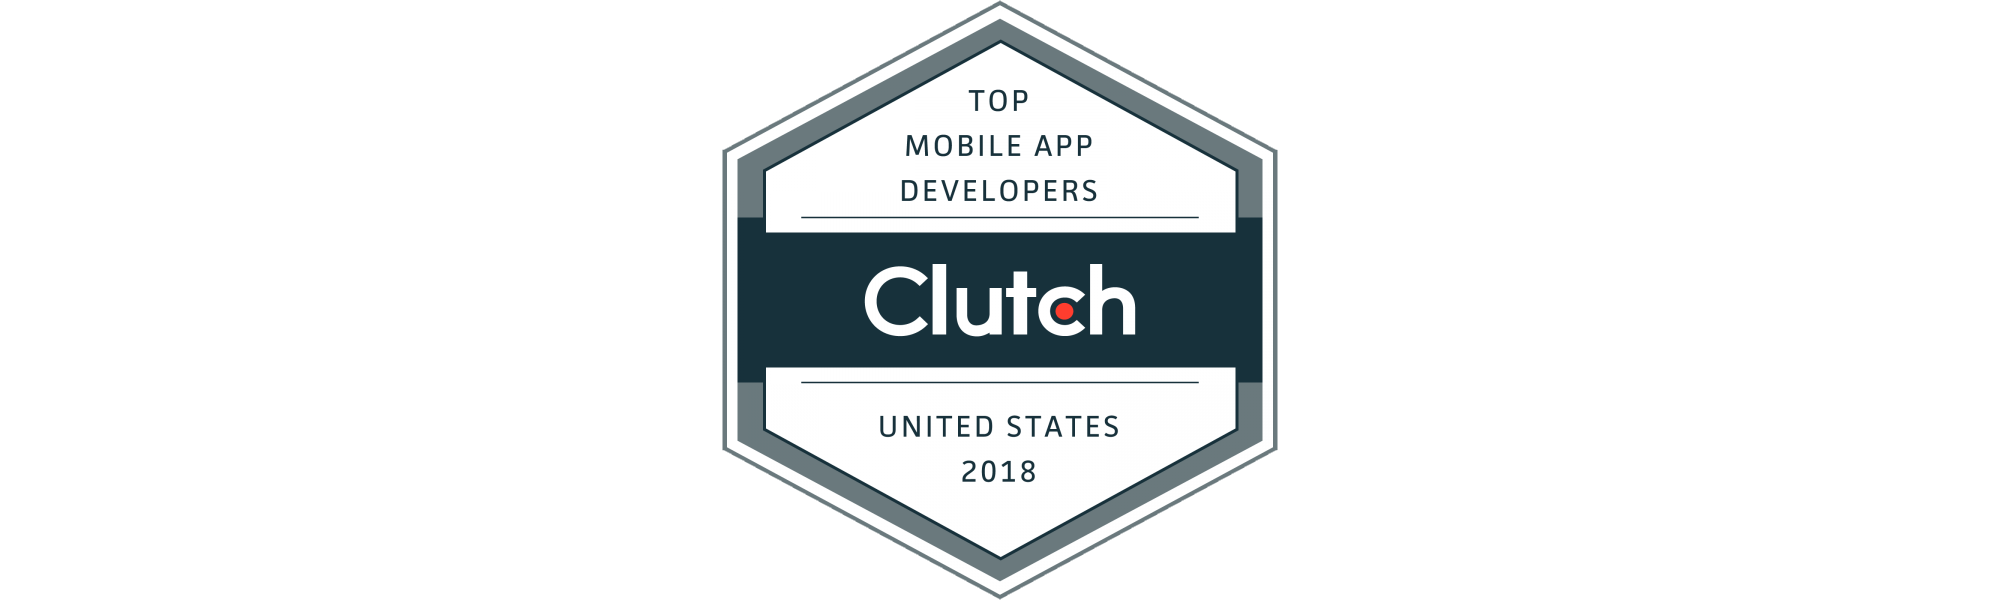 Clutch award Top-Rated B2B Service Providers from Latin America